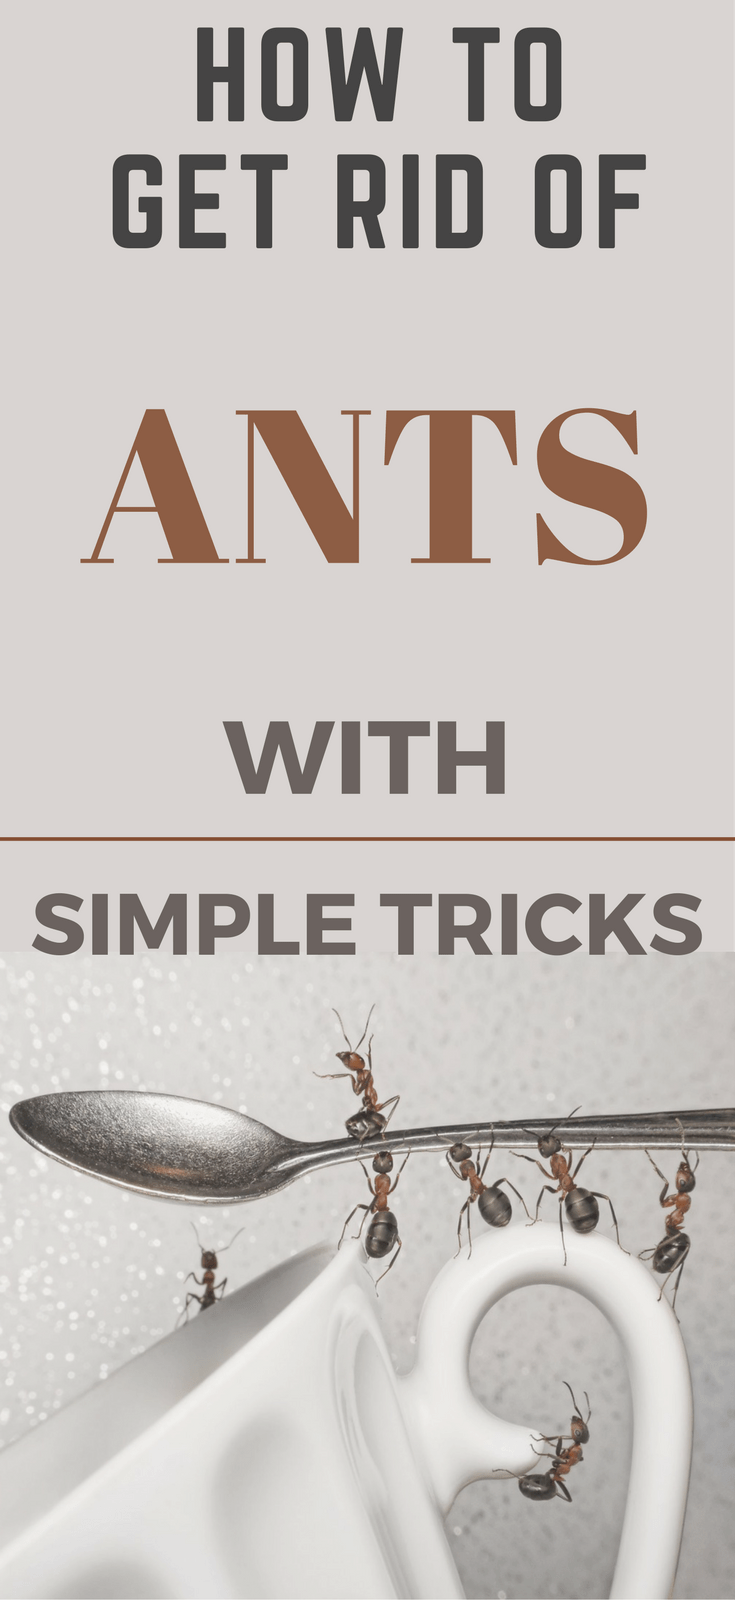 How to Get Rid of Ants In The Kitchen With Simple Tricks